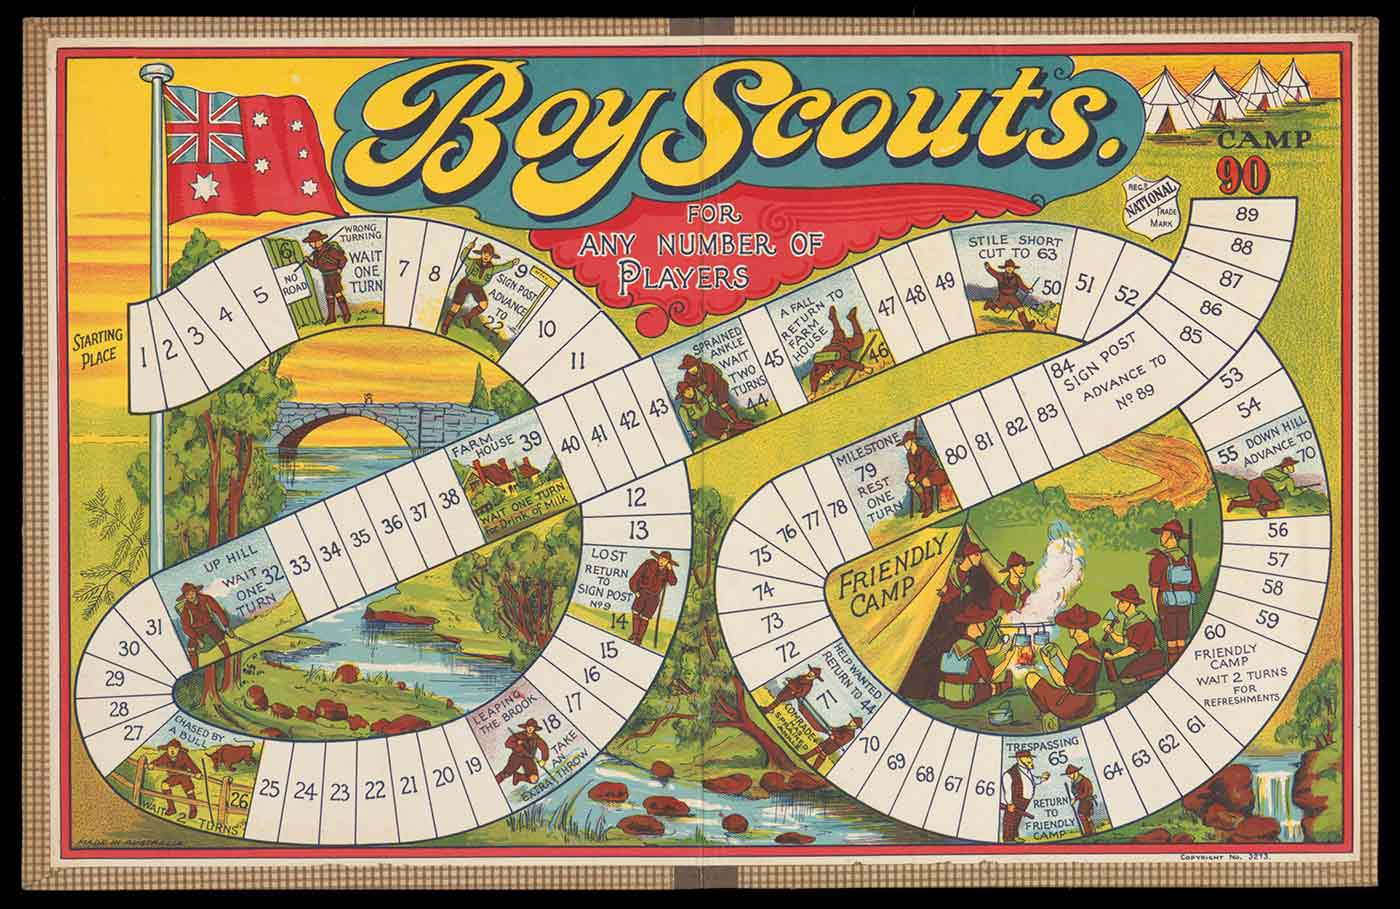 A game board titled 'Boy Scouts' with 90 numbered squares and images of various campsites. - click to view larger image